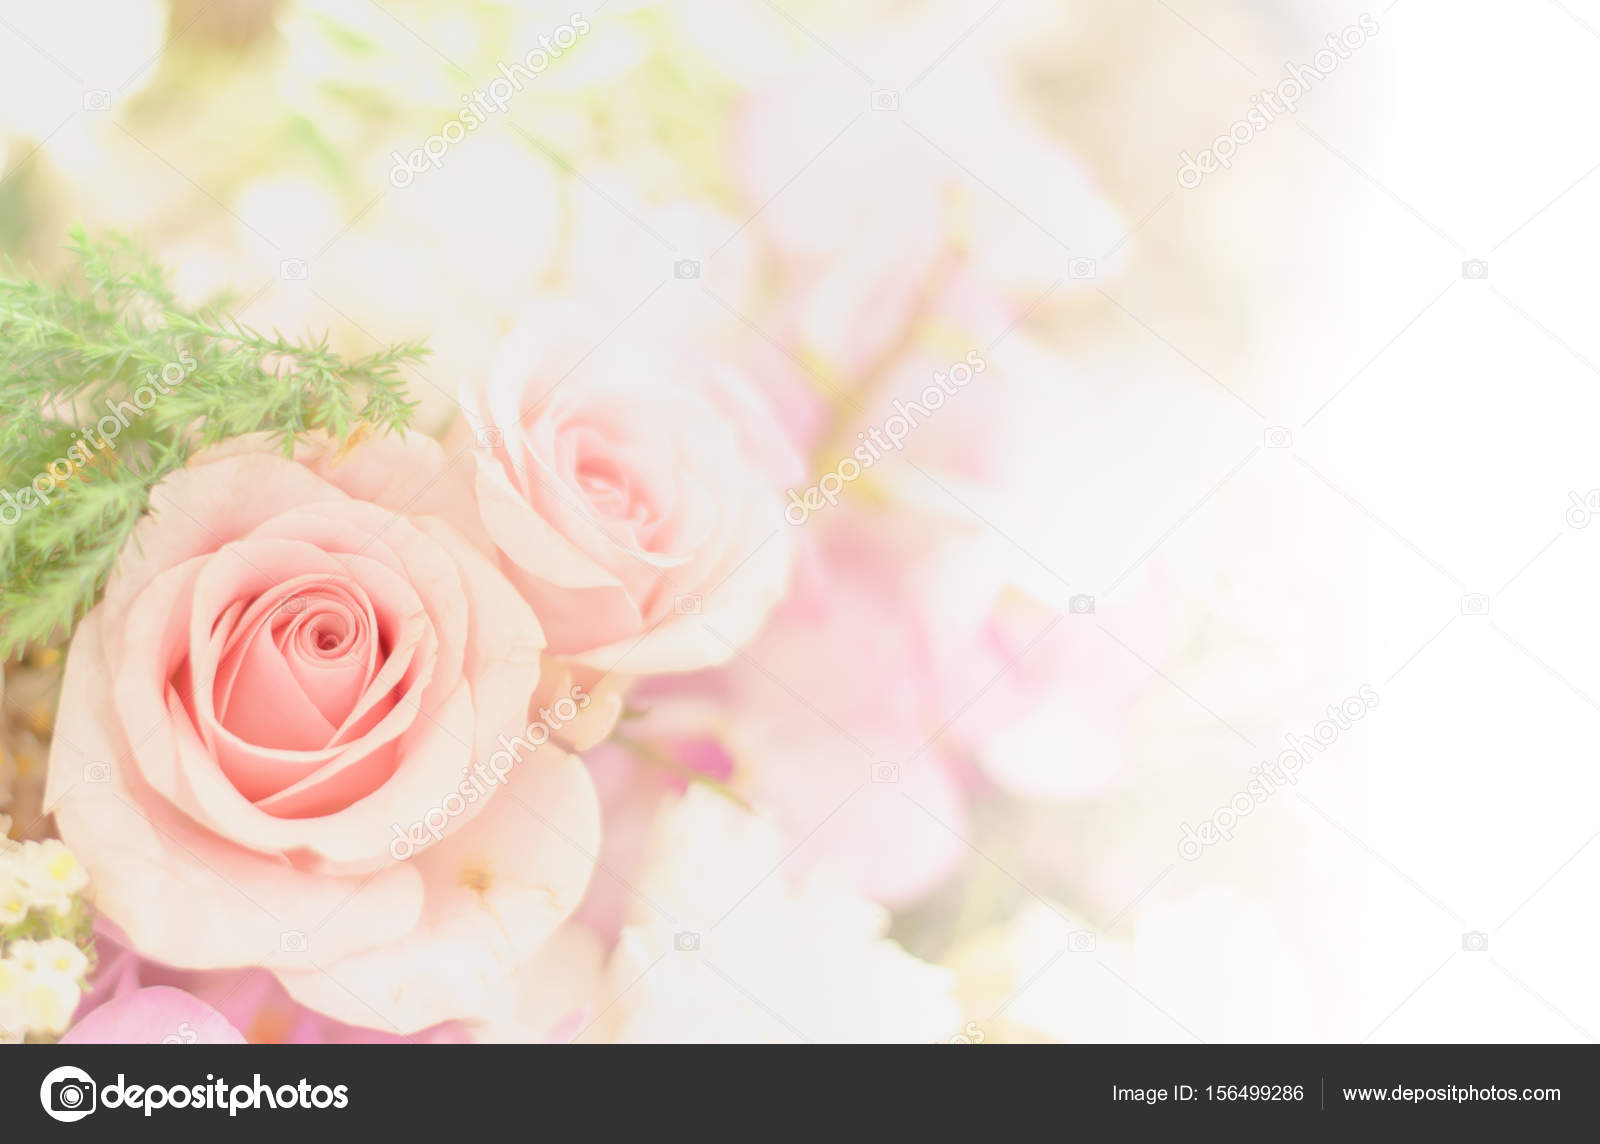 Beautiful Flower Background Wallpaper Made With Color Filters